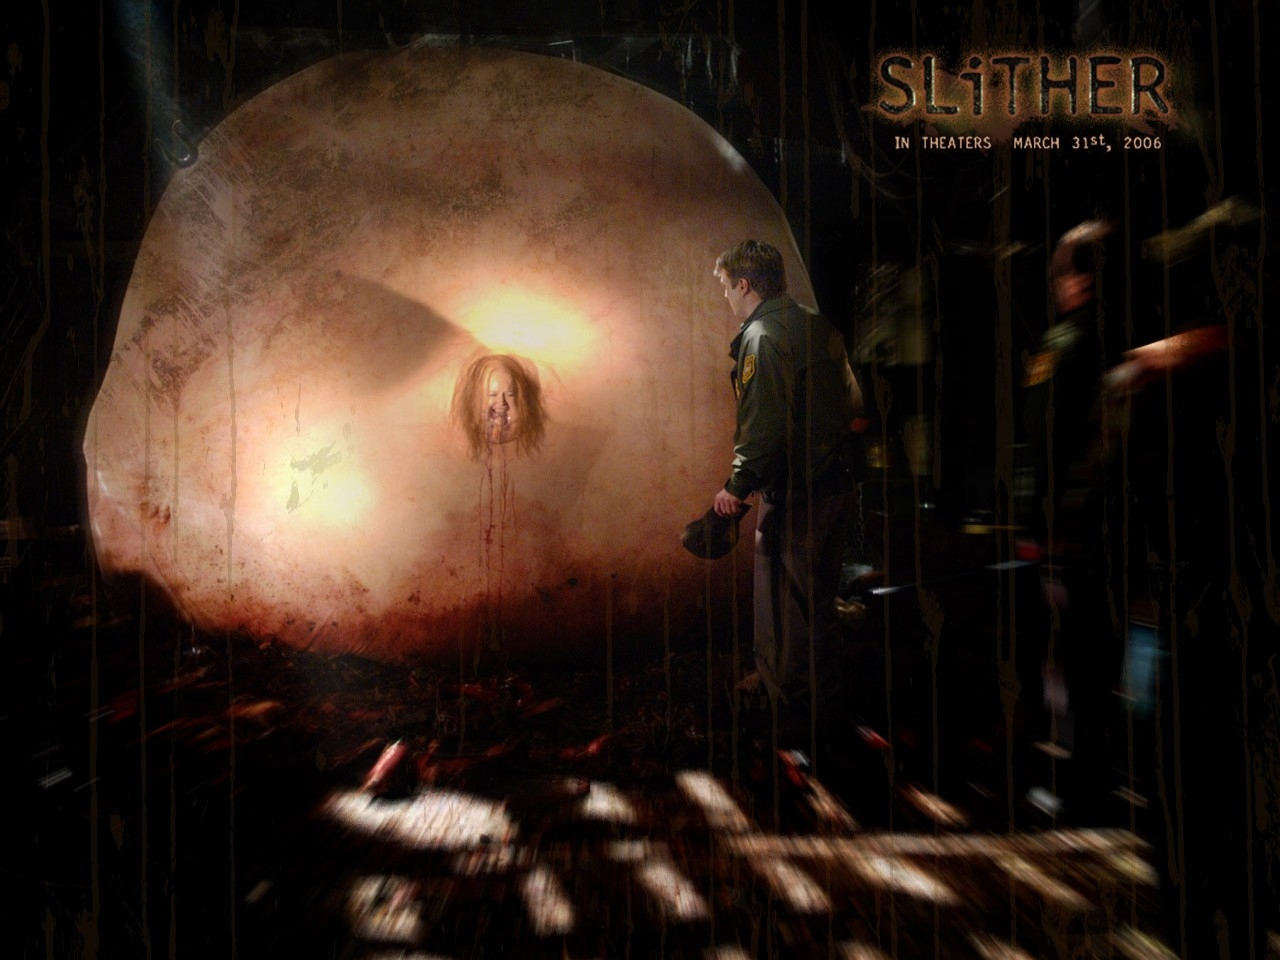 Wallpaper del film Slither